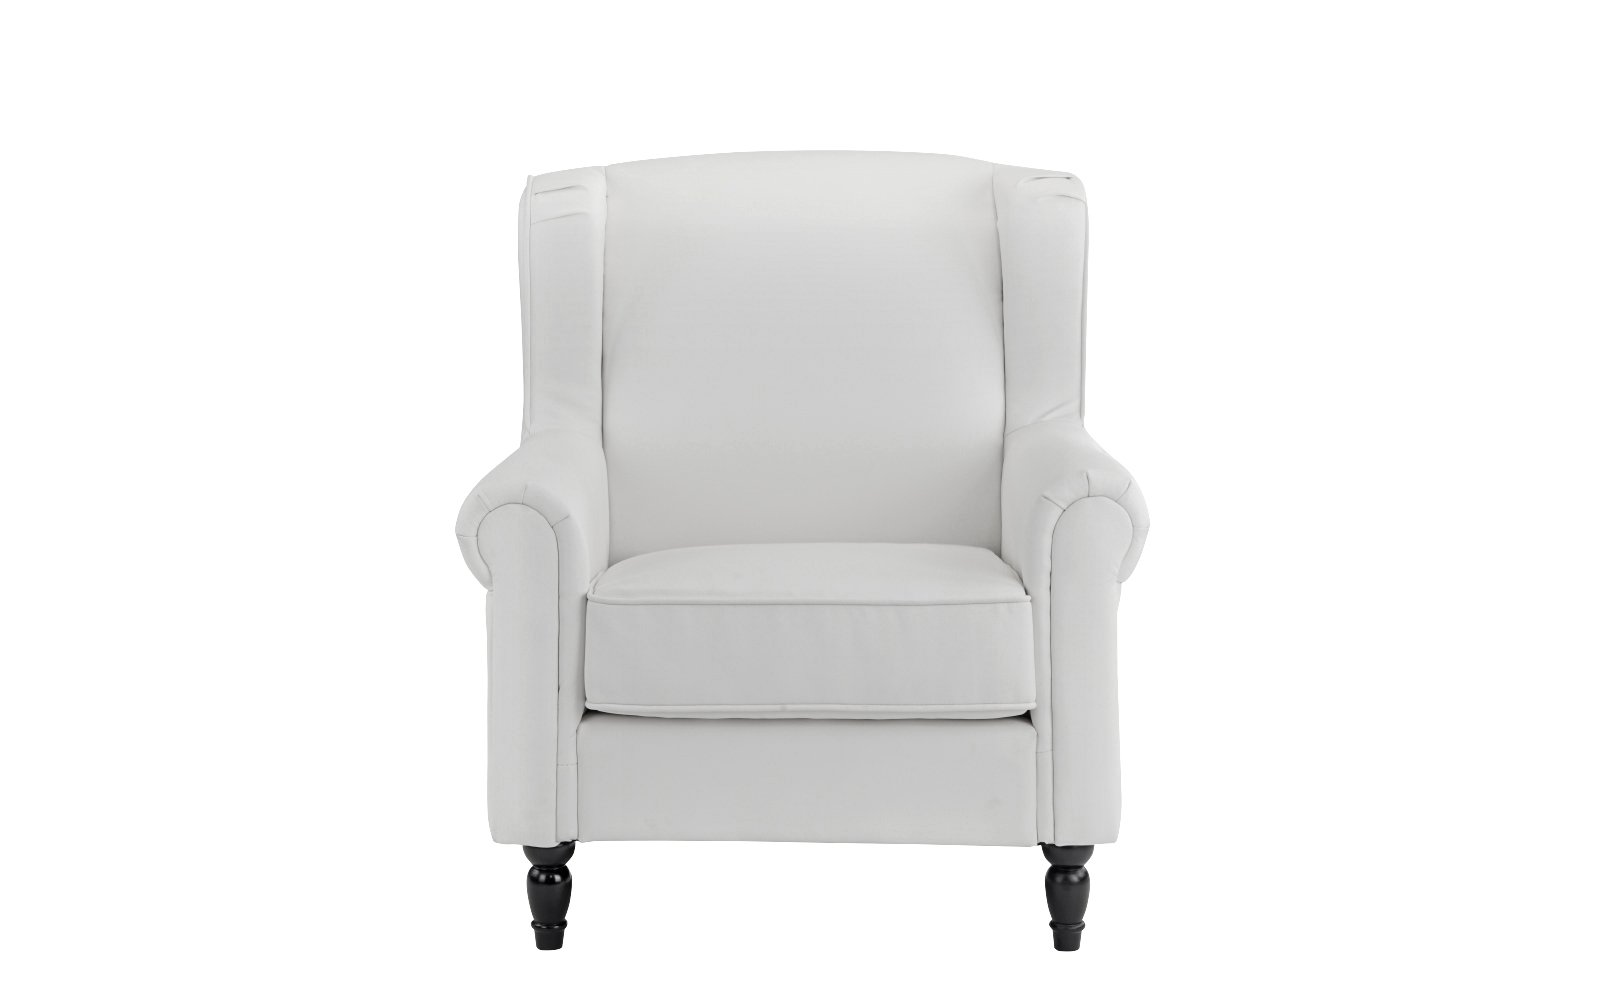 Miraculous Details About Classic Scroll Arm Faux Leather Accent Chair Living Room Armchair White Pabps2019 Chair Design Images Pabps2019Com